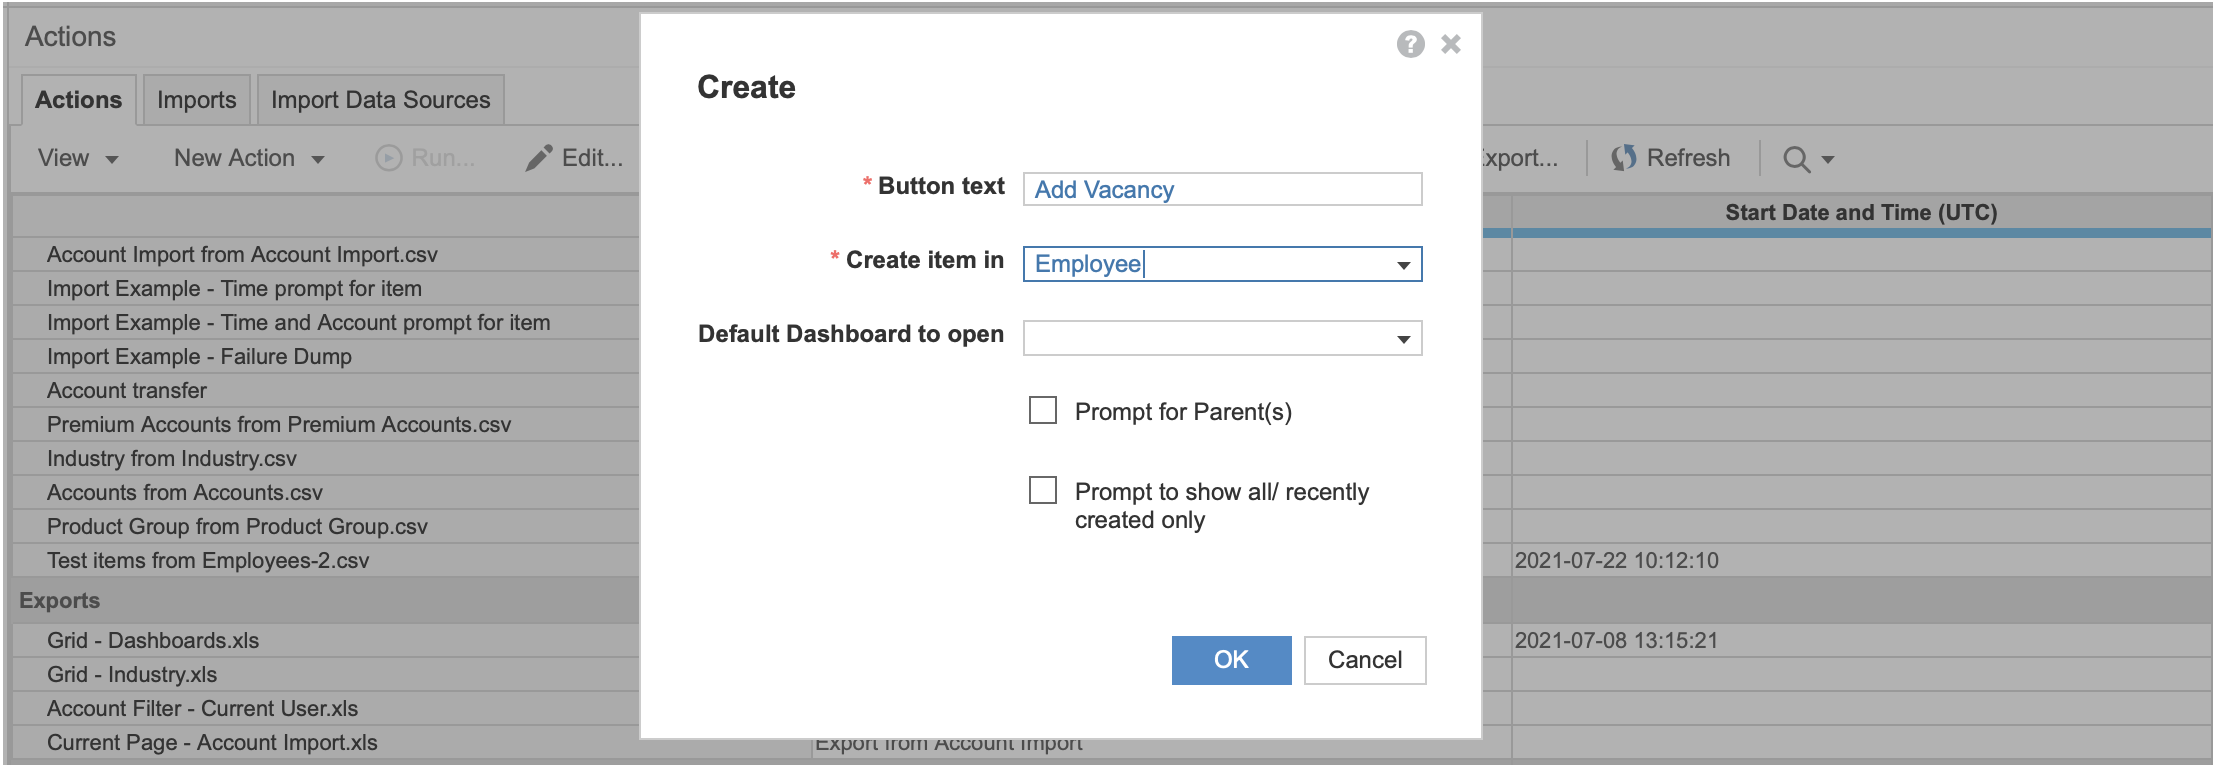 The Actions pane with the Create action dialog open. In the Button text field, the label Add Vacancy has been entered. Employee is selected in the Create item in dropdown. The other fields are blank.